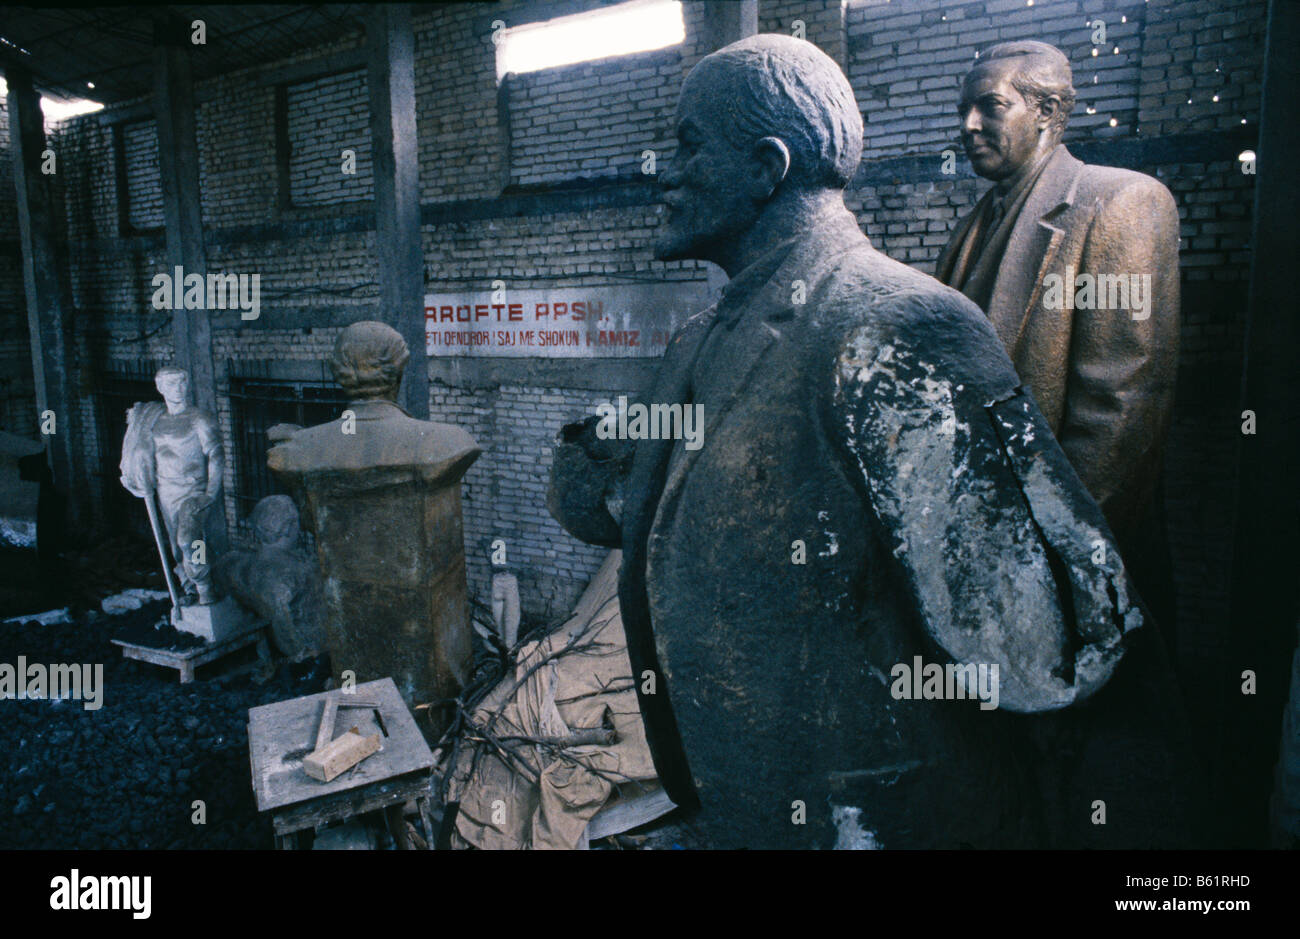 Statues of Enver Hoxha Vladimir Illych Lenin and others stand abandoned , Tirana, Albania - Stock Image